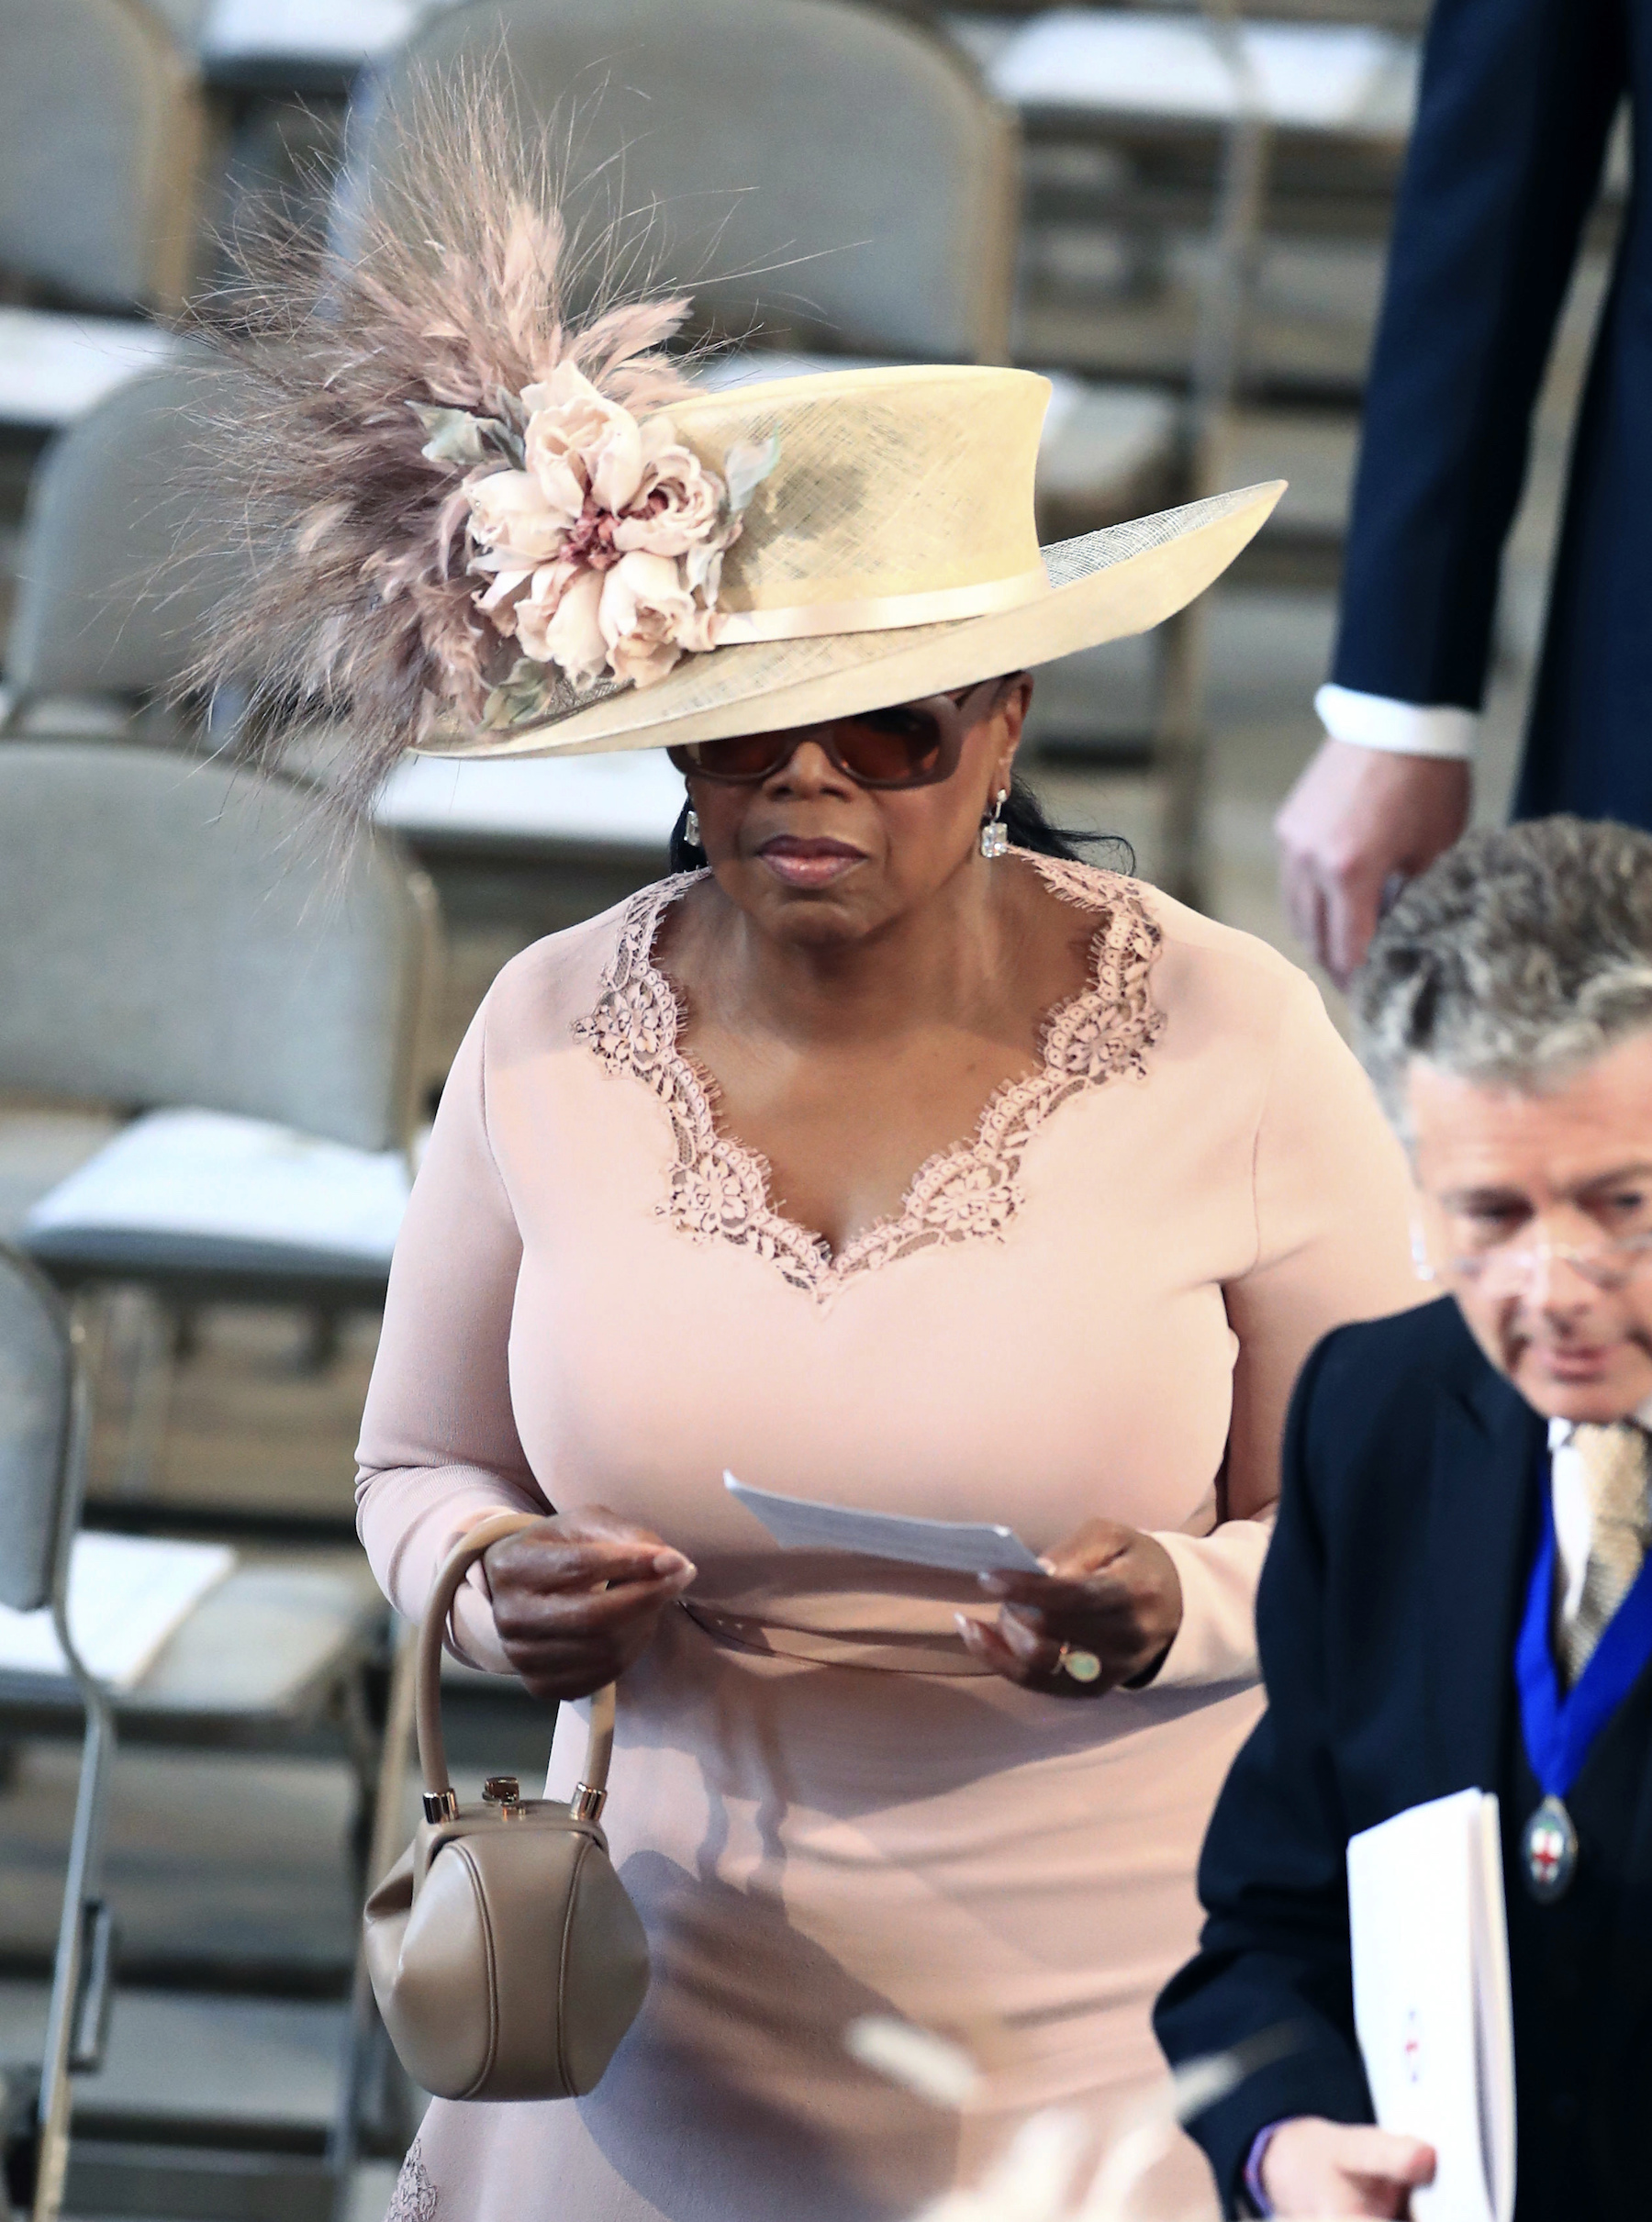 "<div class=""meta image-caption""><div class=""origin-logo origin-image ap""><span>AP</span></div><span class=""caption-text"">Oprah Winfrey arrives in St George's Chapel at Windsor Castle for the wedding of Prince Harry and Meghan Markle. (Danny Lawson/PA Wire)</span></div>"